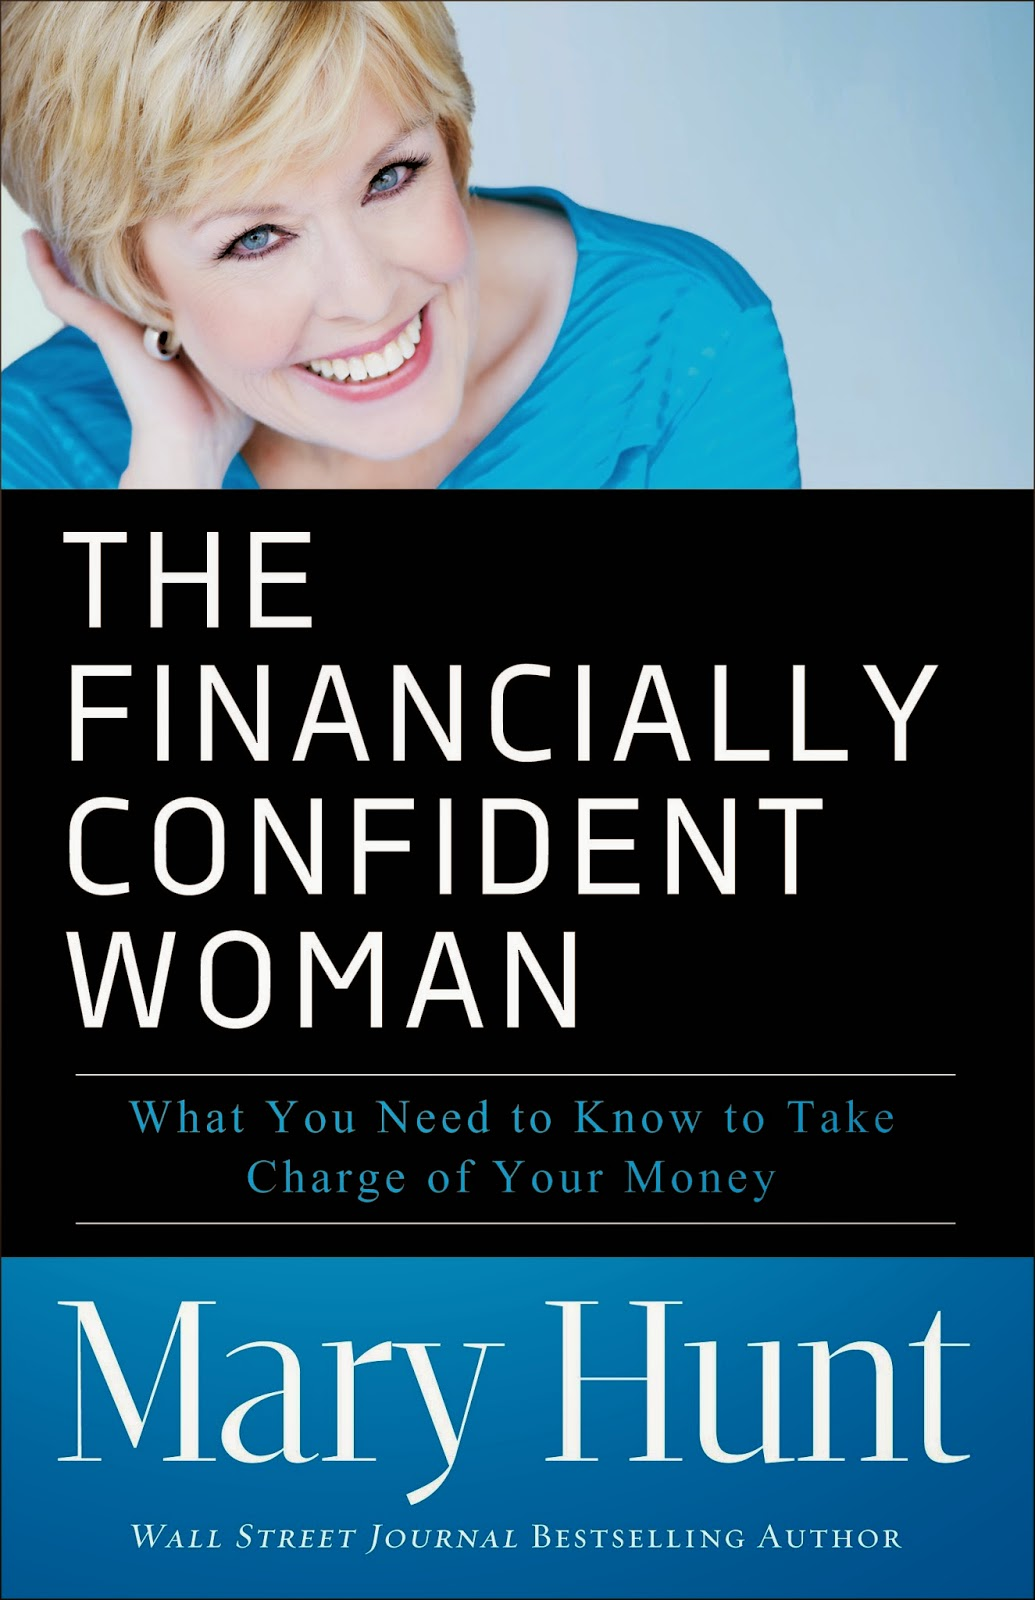 The Financially Confident Woman Book Cover